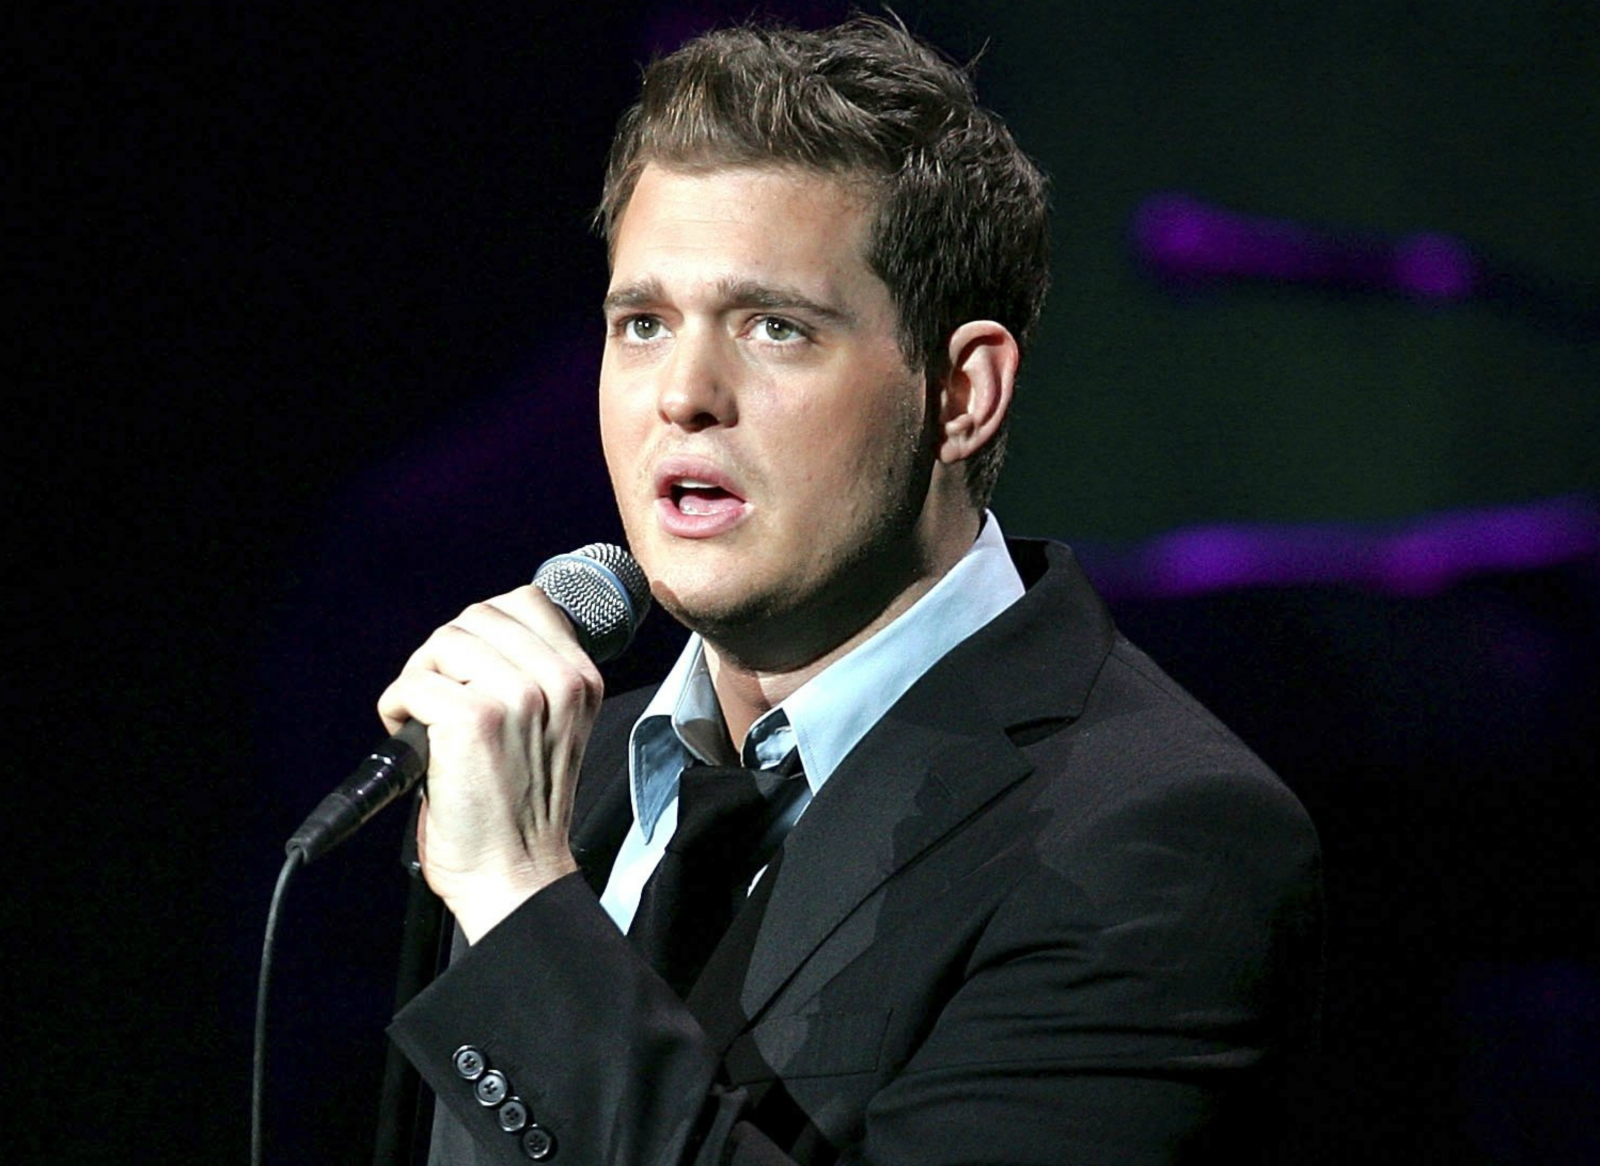 michael buble - photo #6